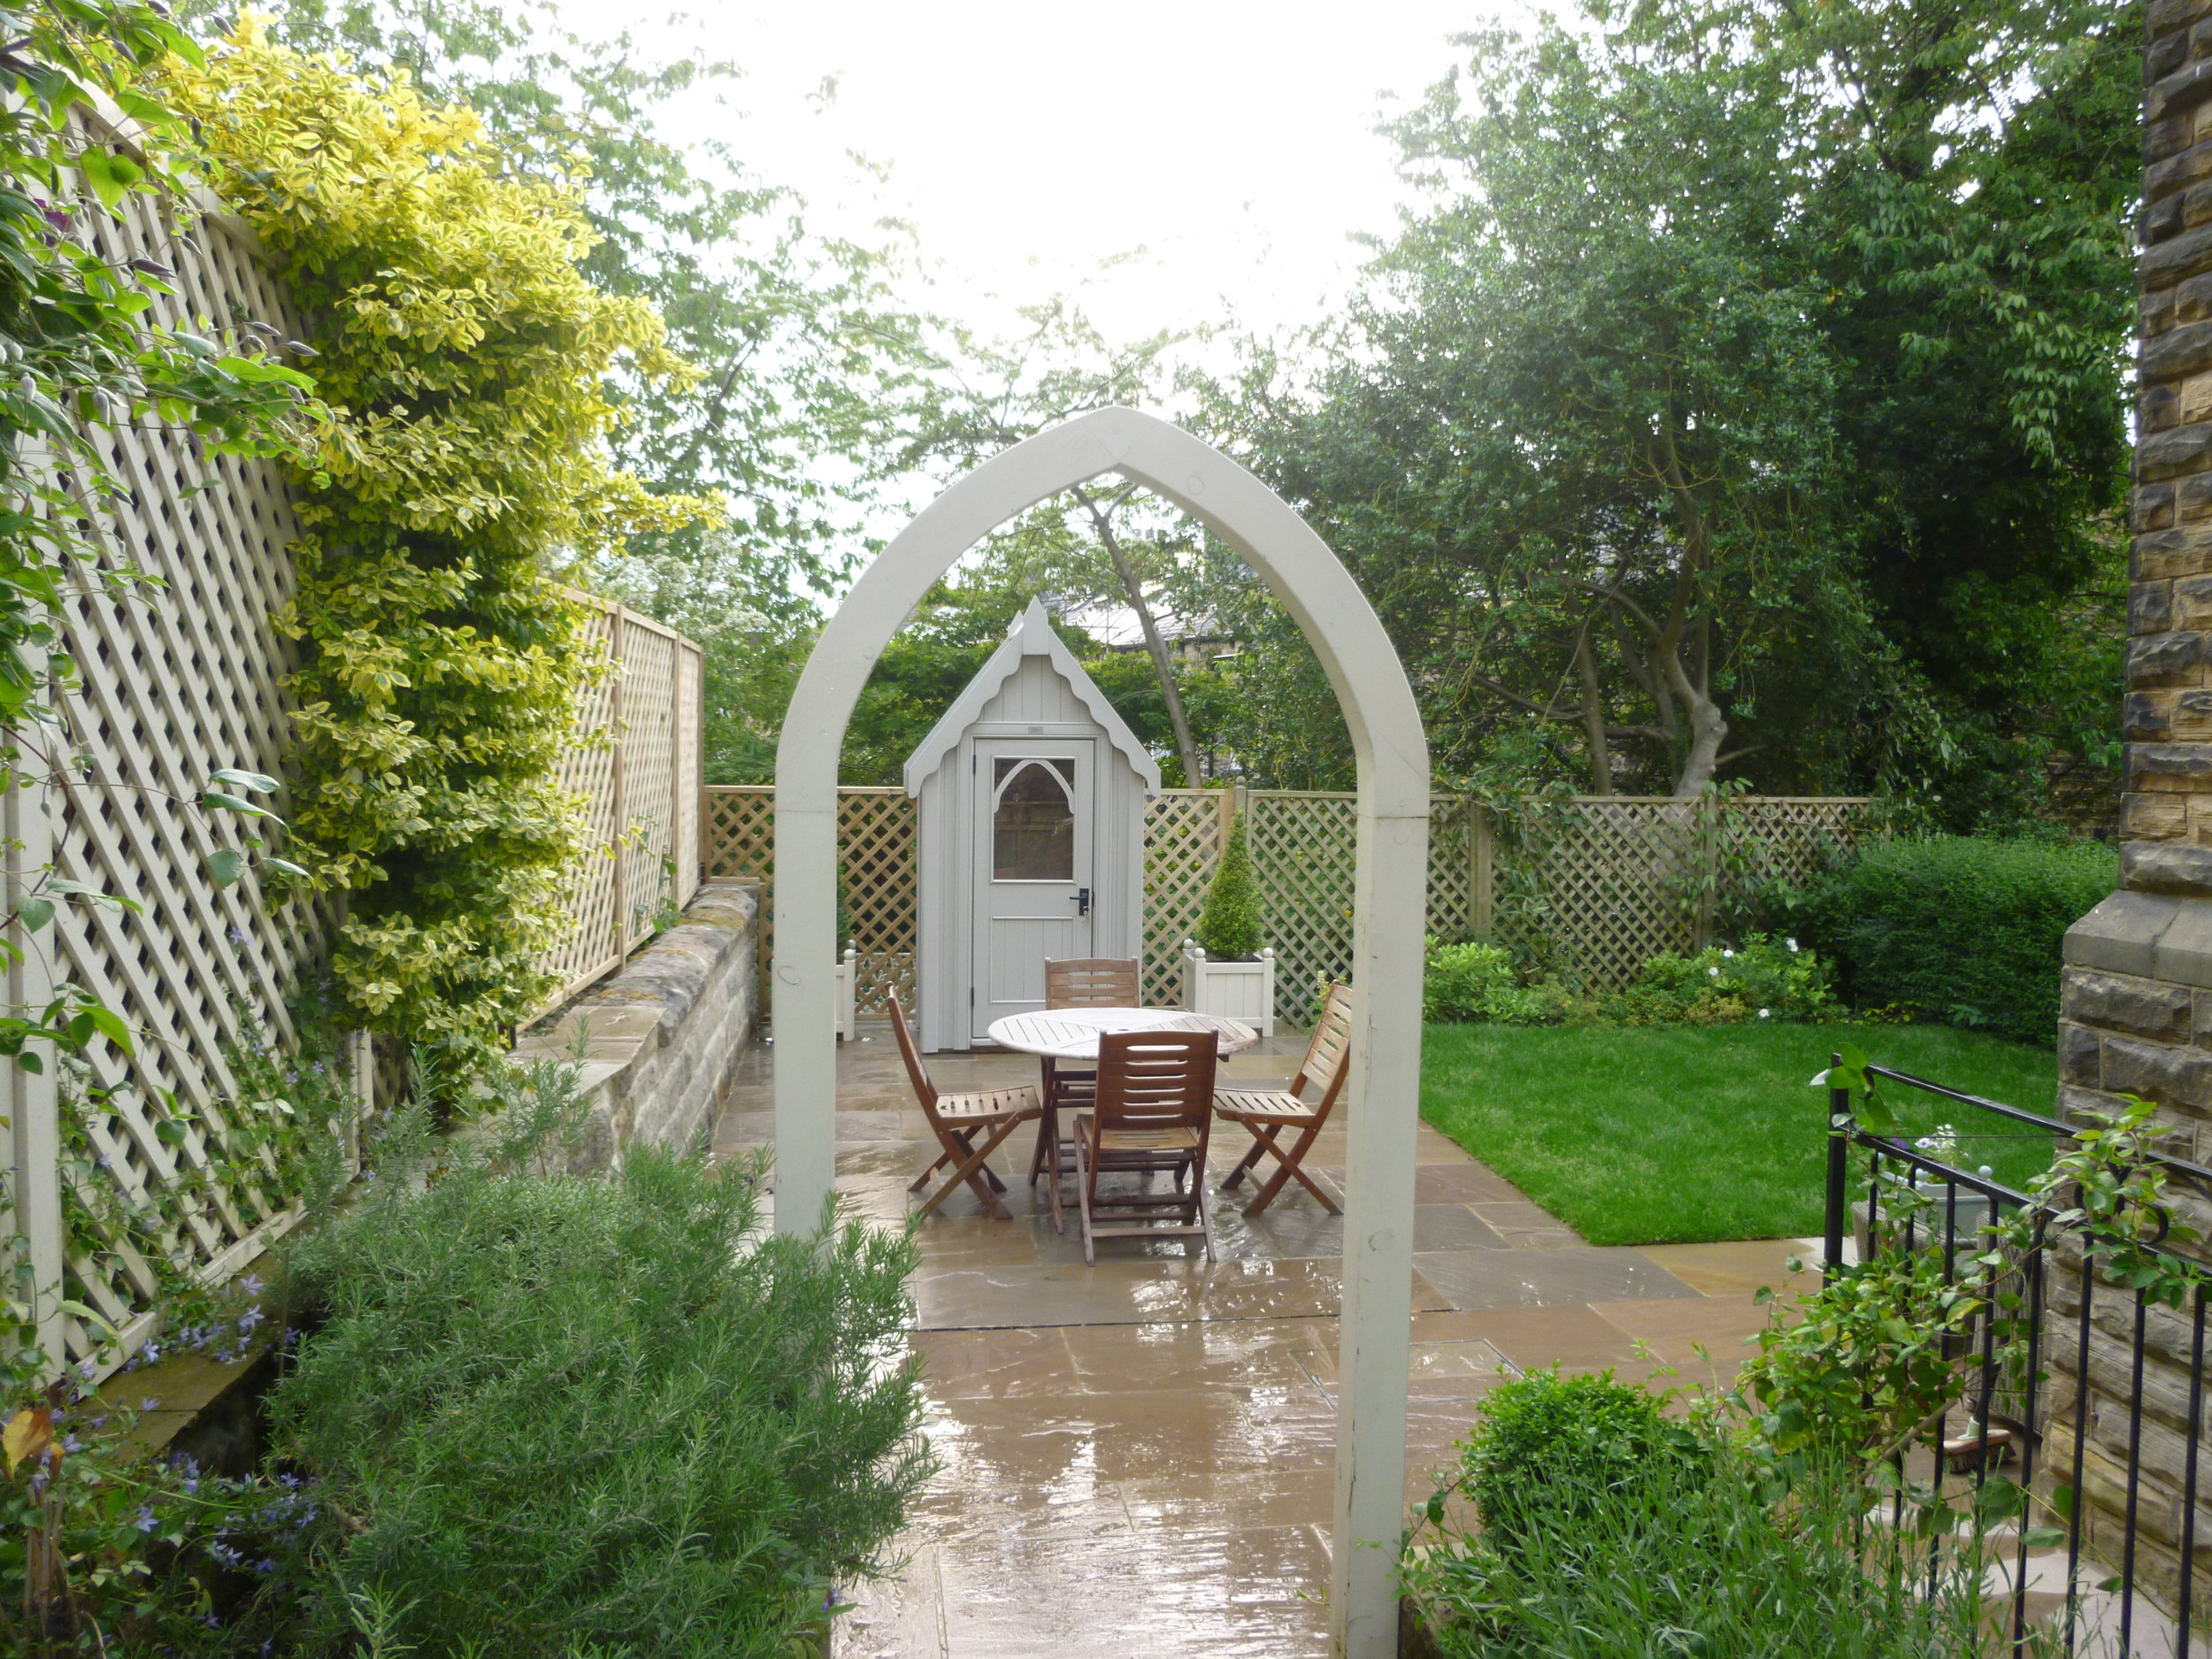 Shed framed by a bespoke 'Gothic' painted timber arch.